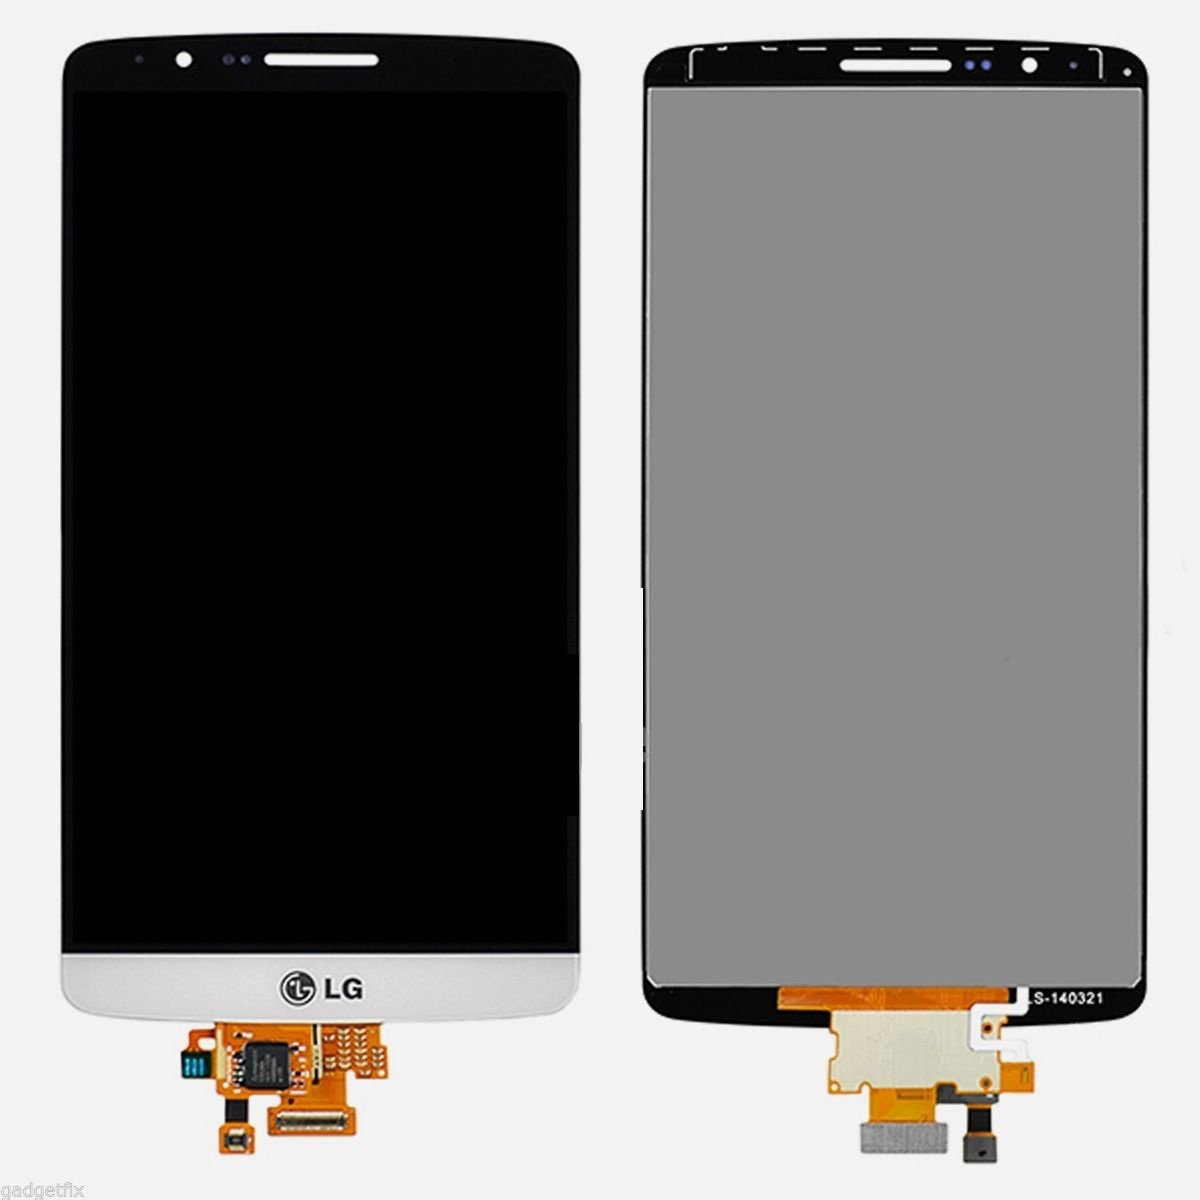 New OEM LG G3 D850 D851 D855 VS985 LS990 LCD Screen Display + Digitizer Touch White